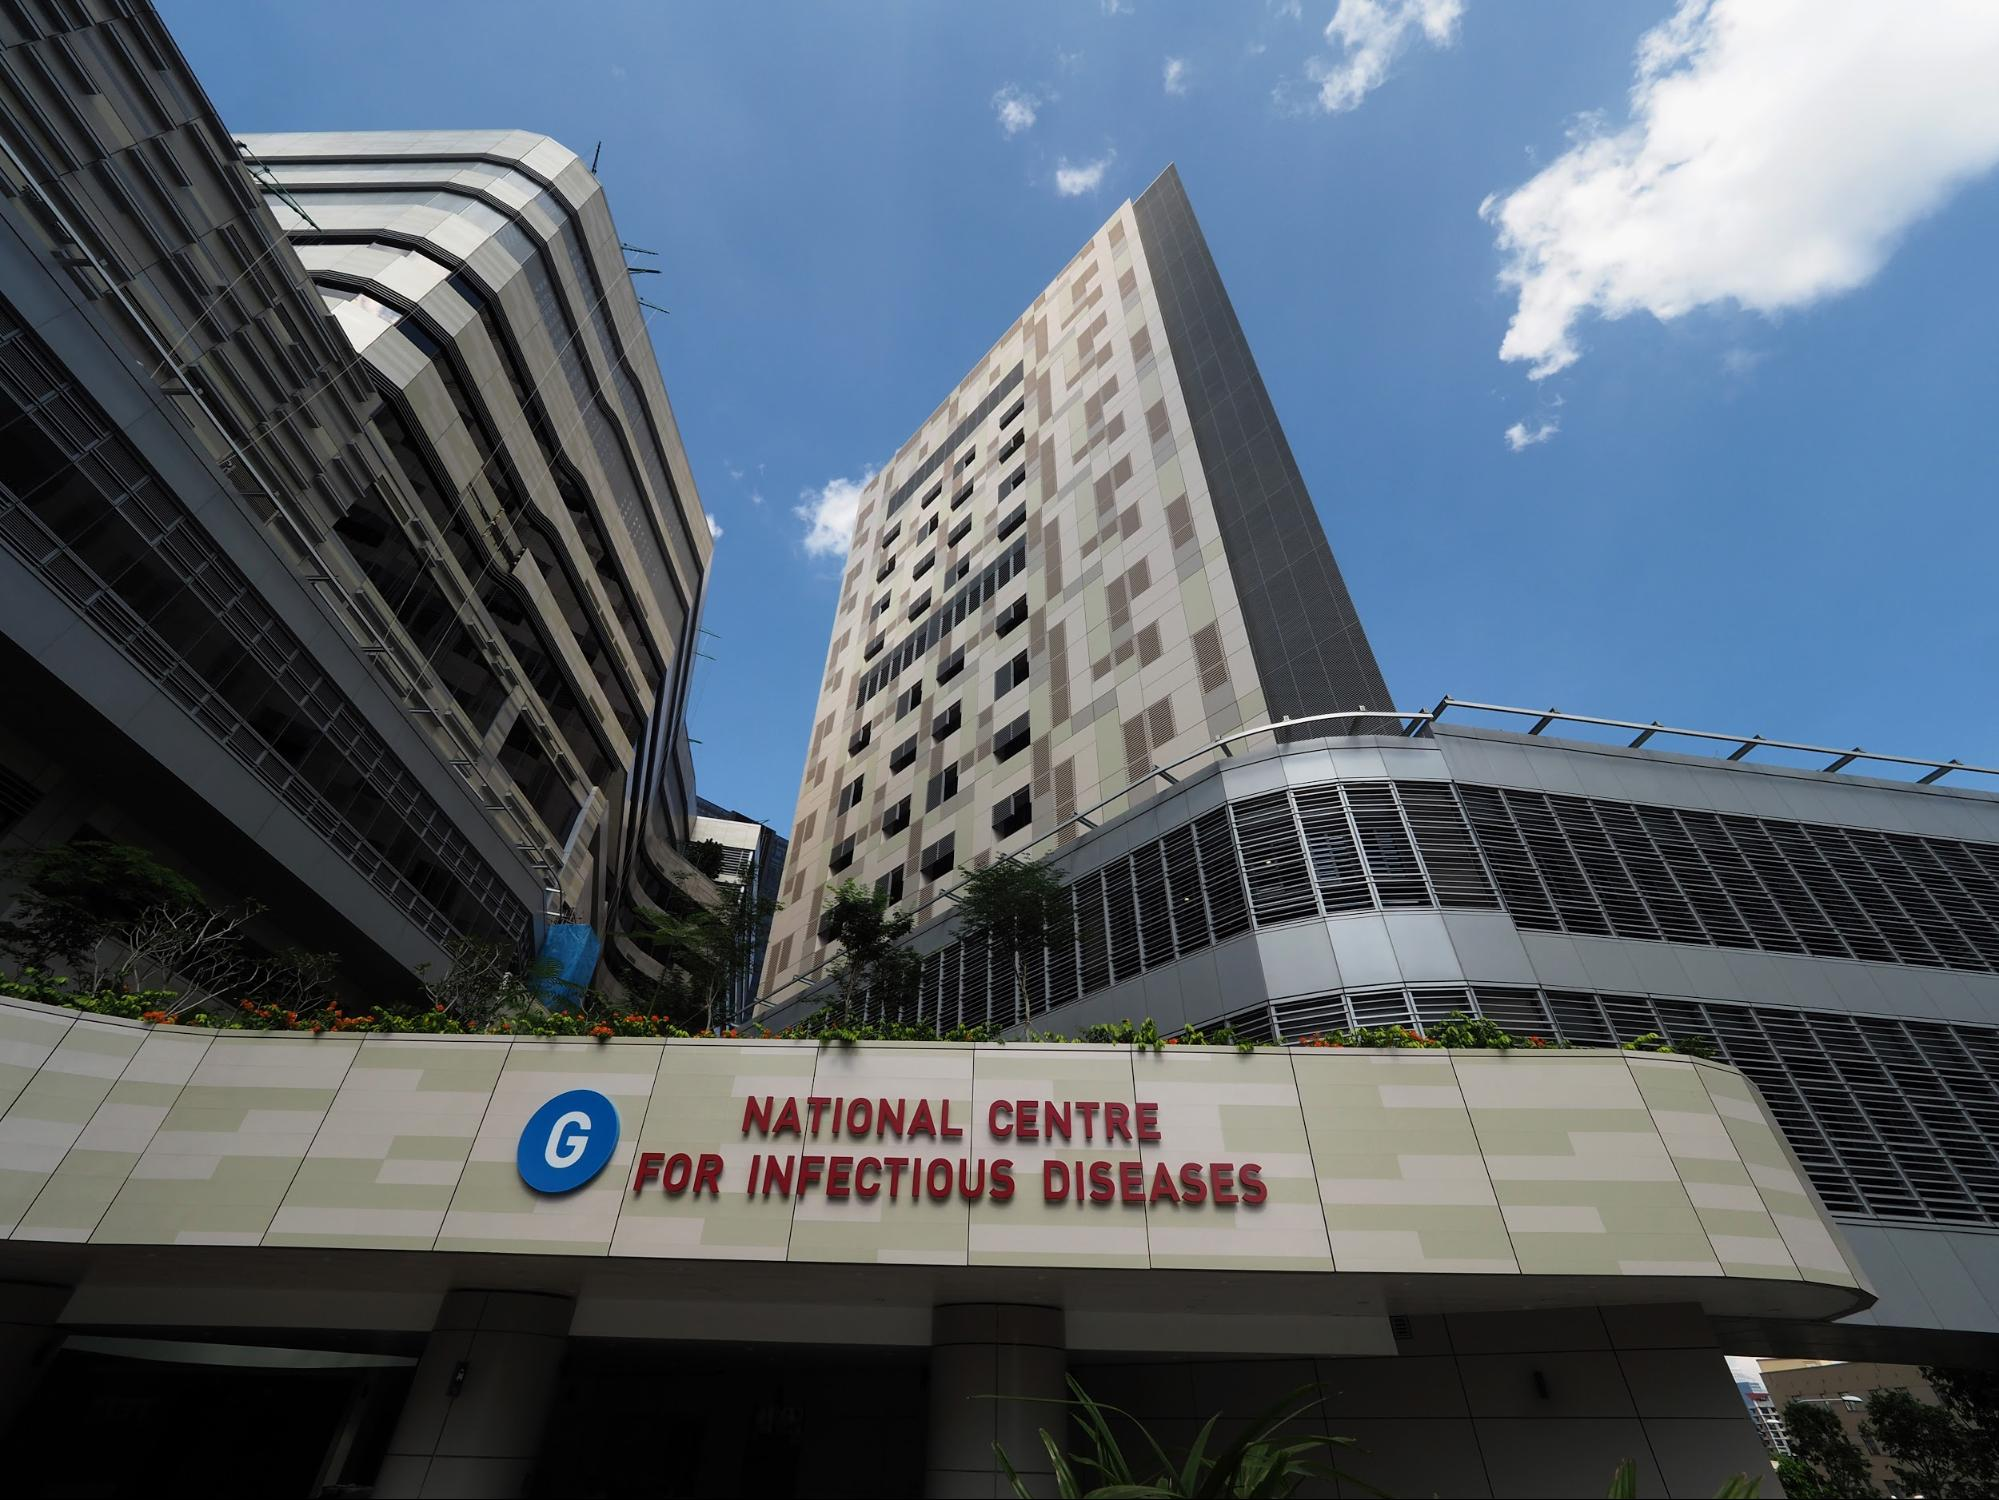 The National Centre for Infectious Diseases is the facility capable of housing the largest number of coronavirus patients